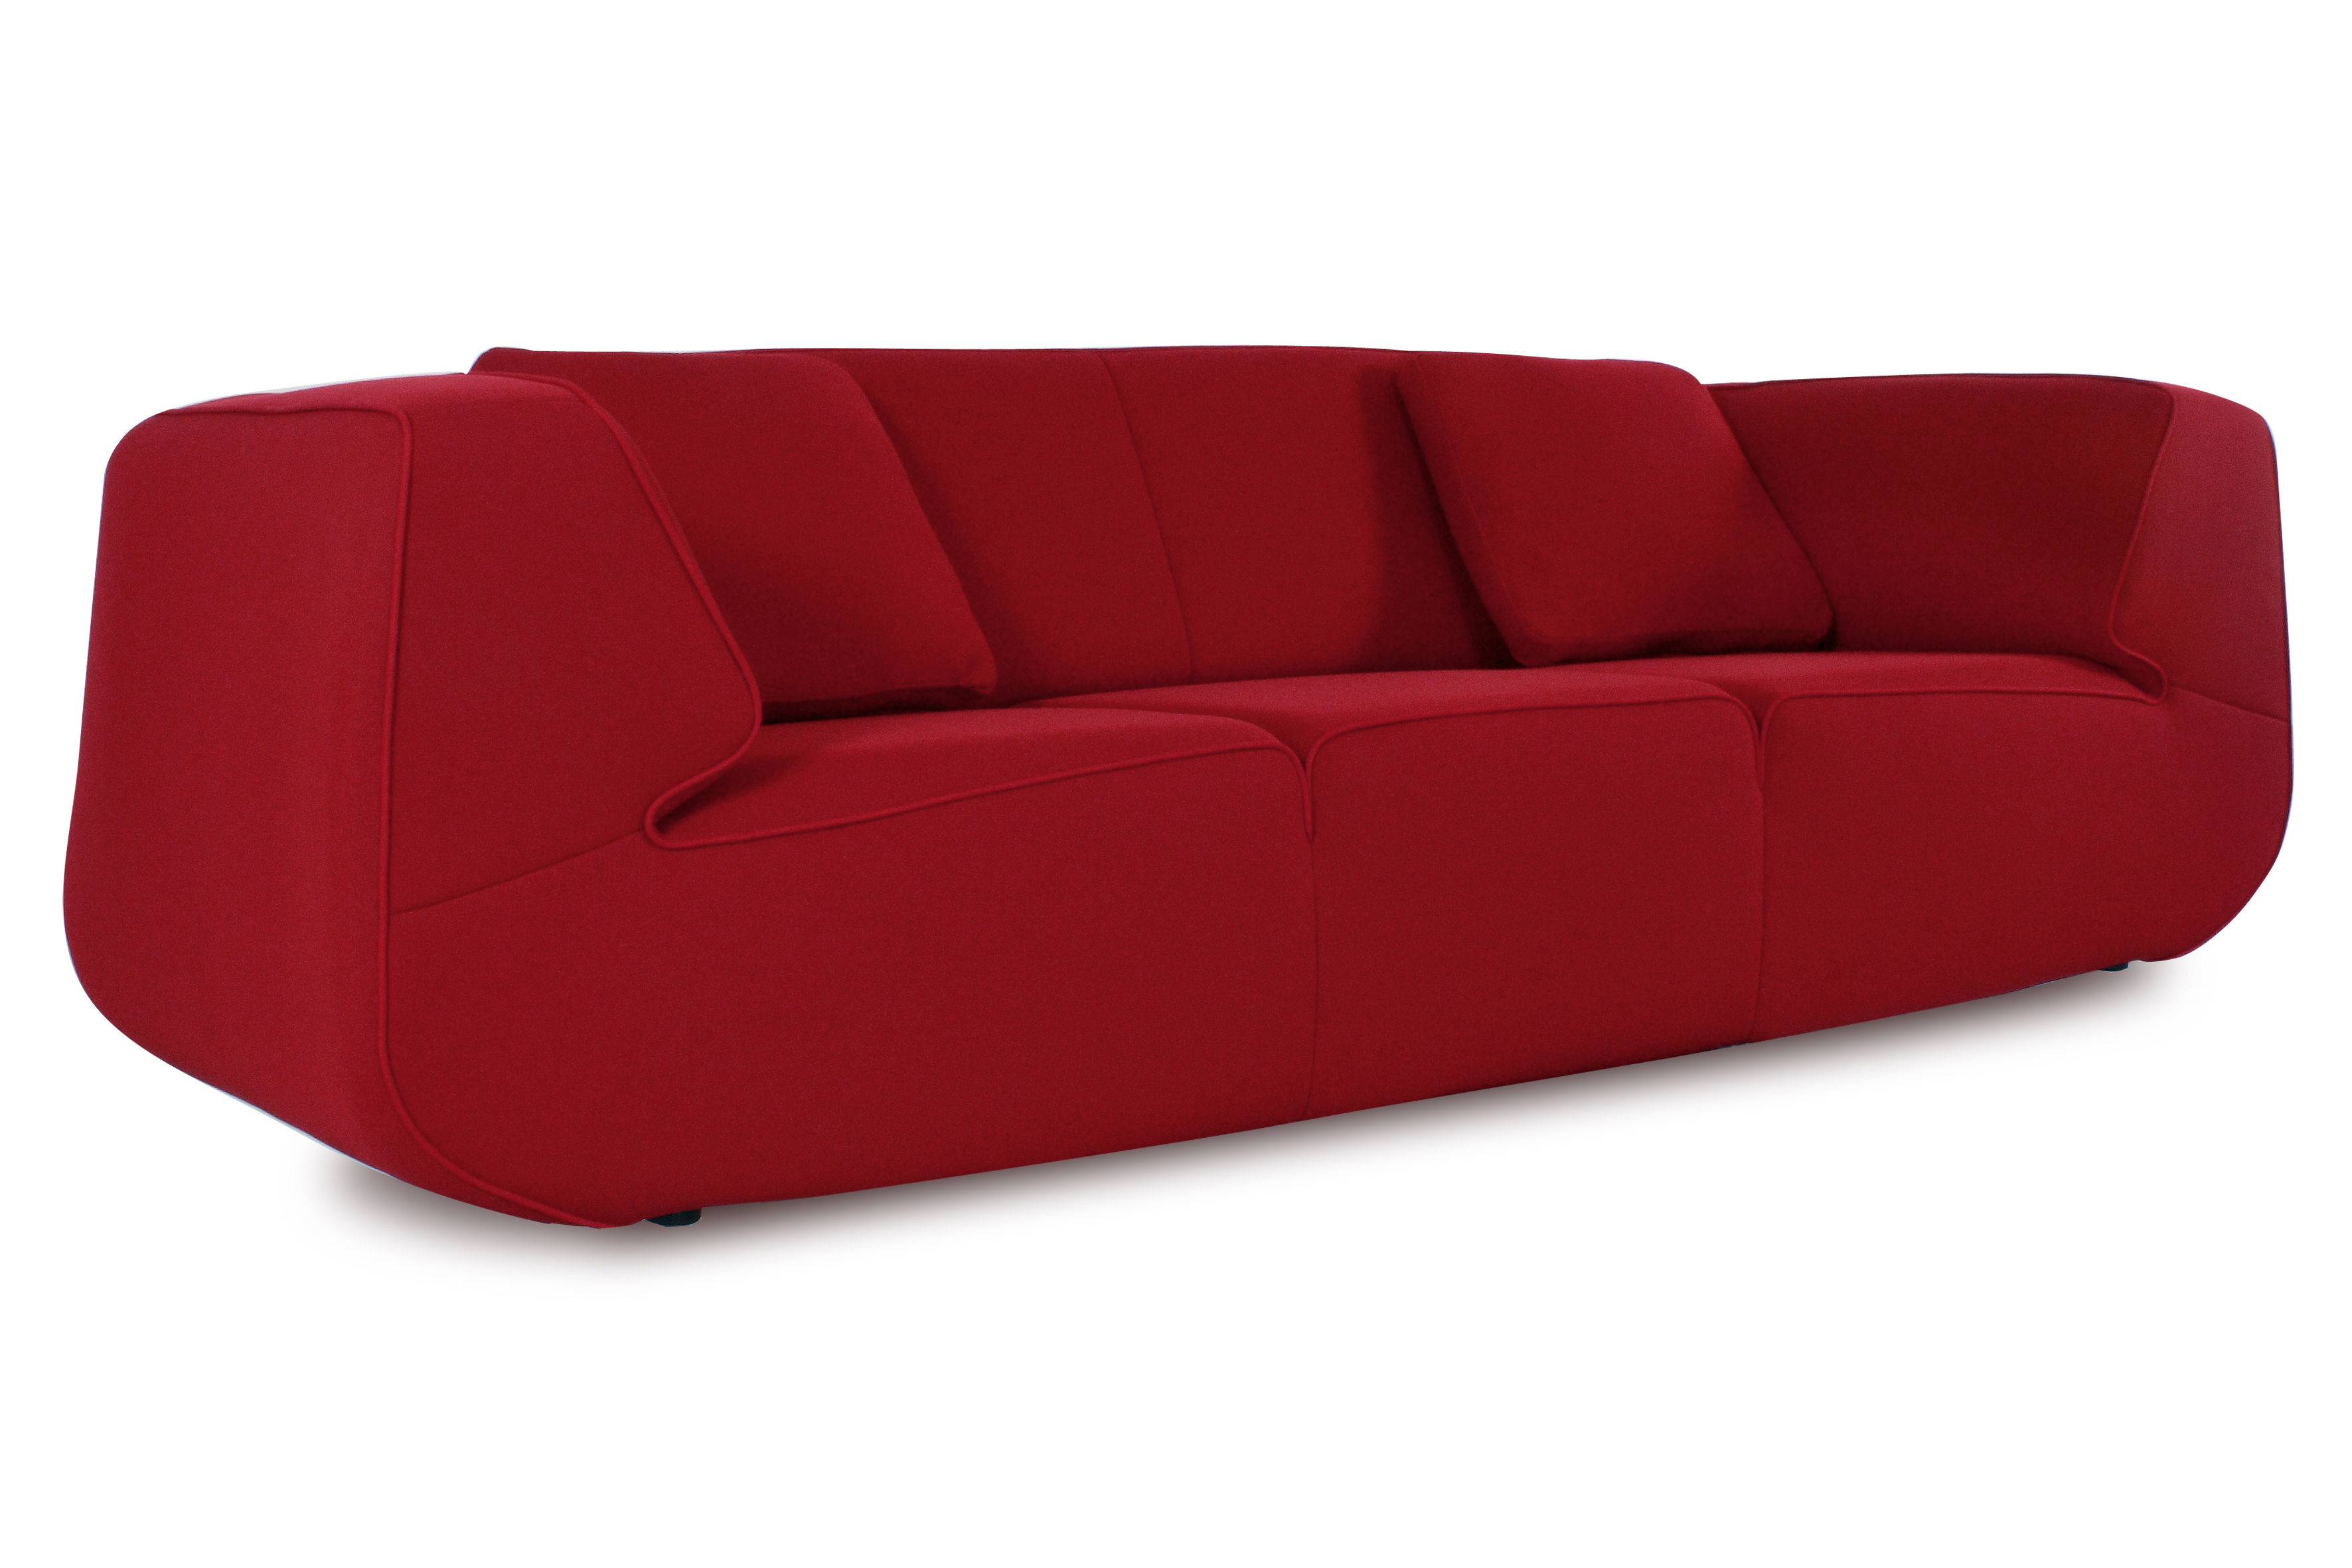 Canap droit bump by ora ito xl 3 places l 238 cm rouge rouge dunlo - Vente privee dunlopillo ...